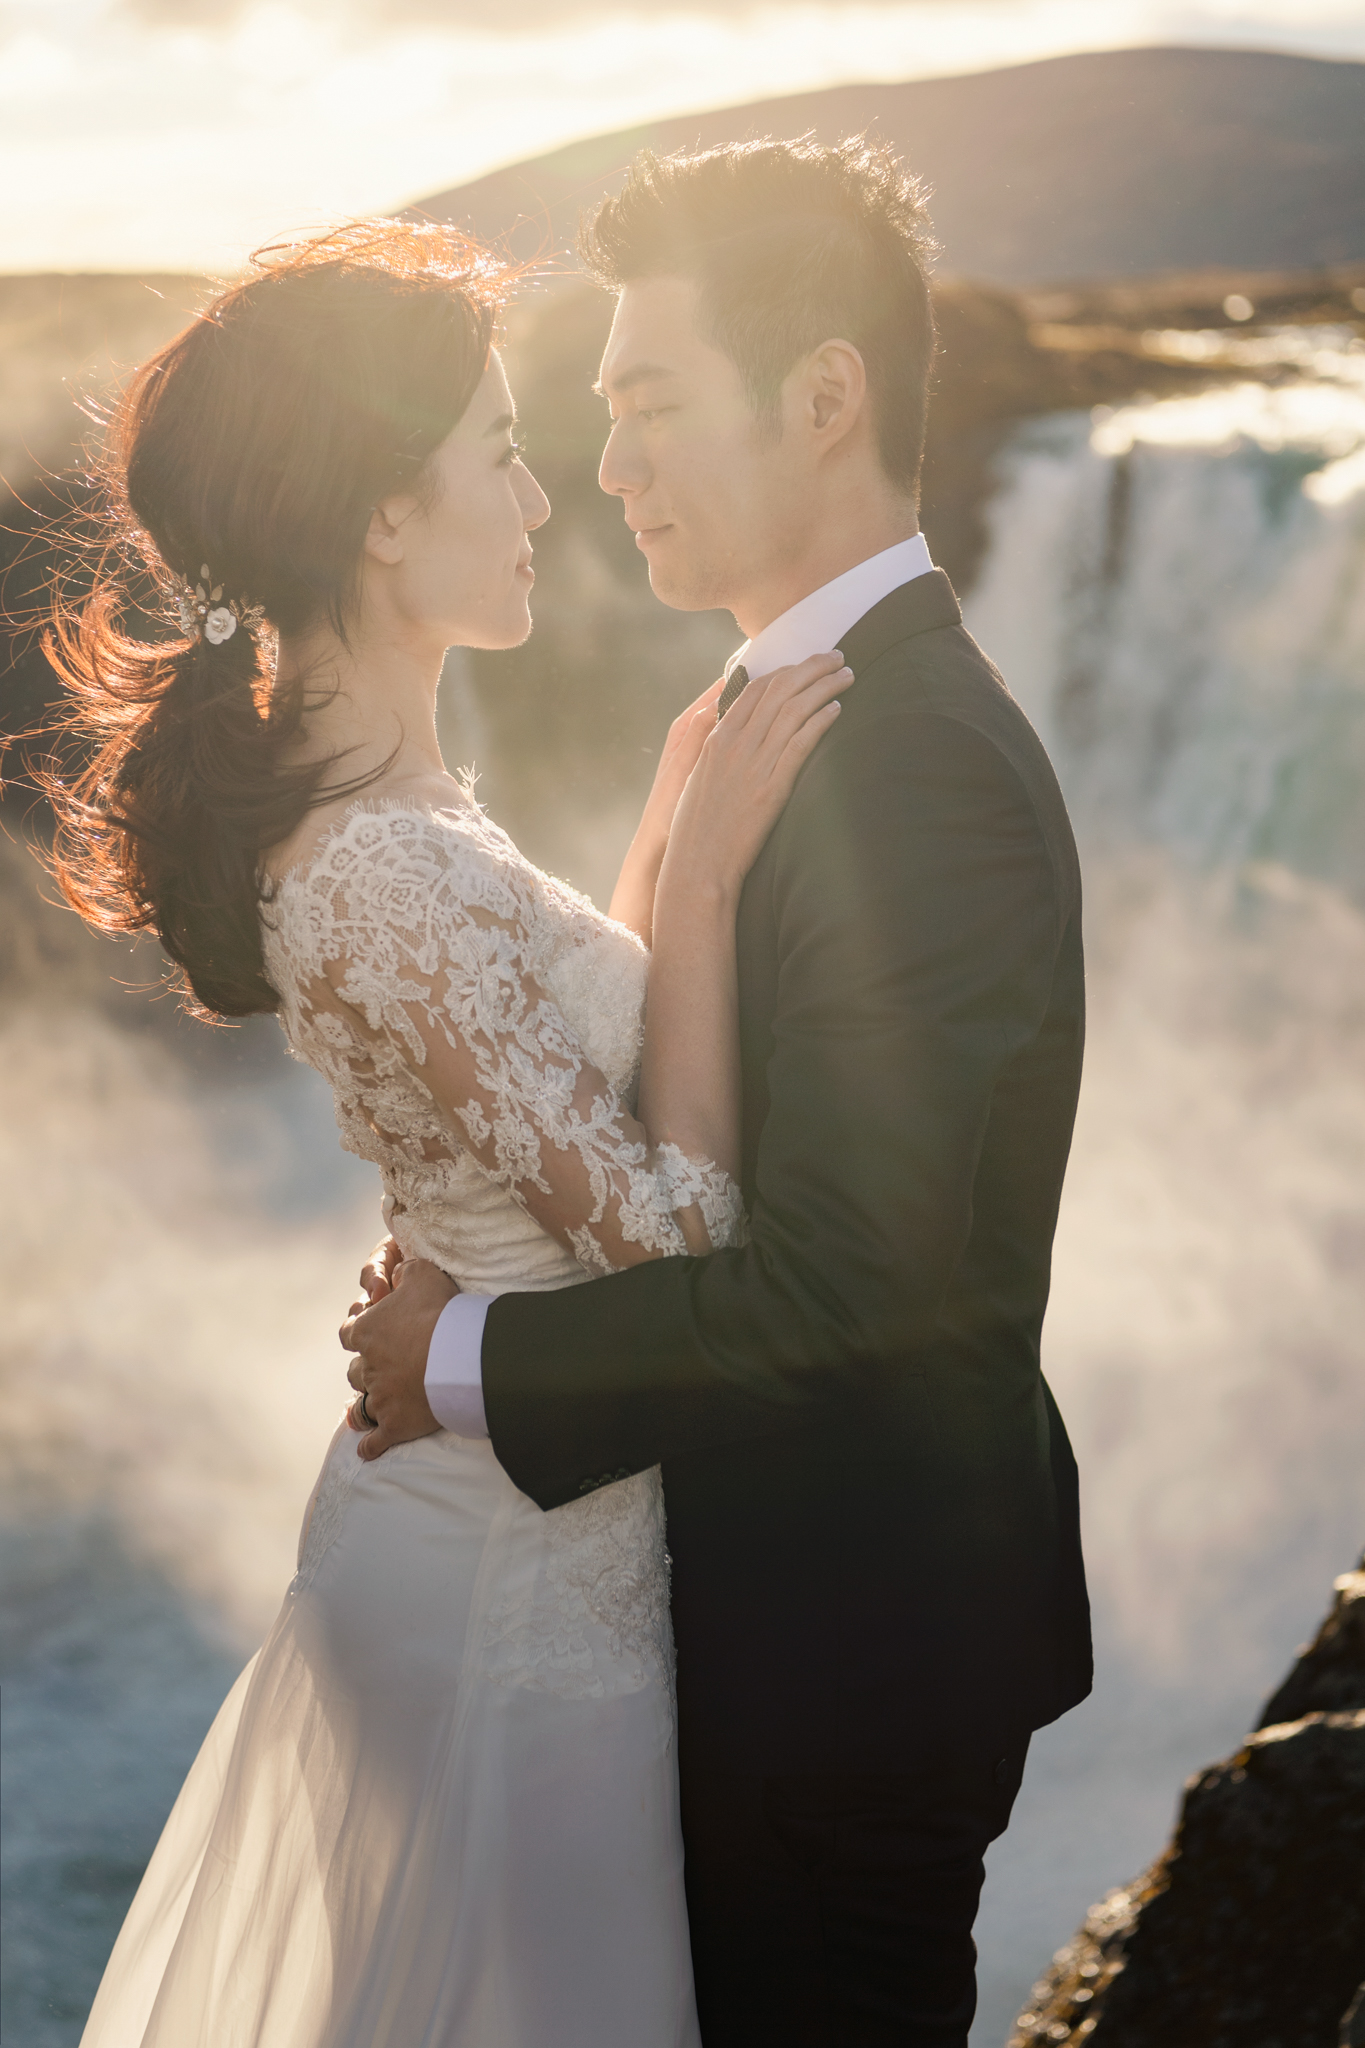 冰島婚紗, 自主婚紗, 東法, 海外婚紗, 婚紗影像, 藝術婚紗, Donfer, Donfer Photography, EASTERN WEDDING, Fine Art, Ieland